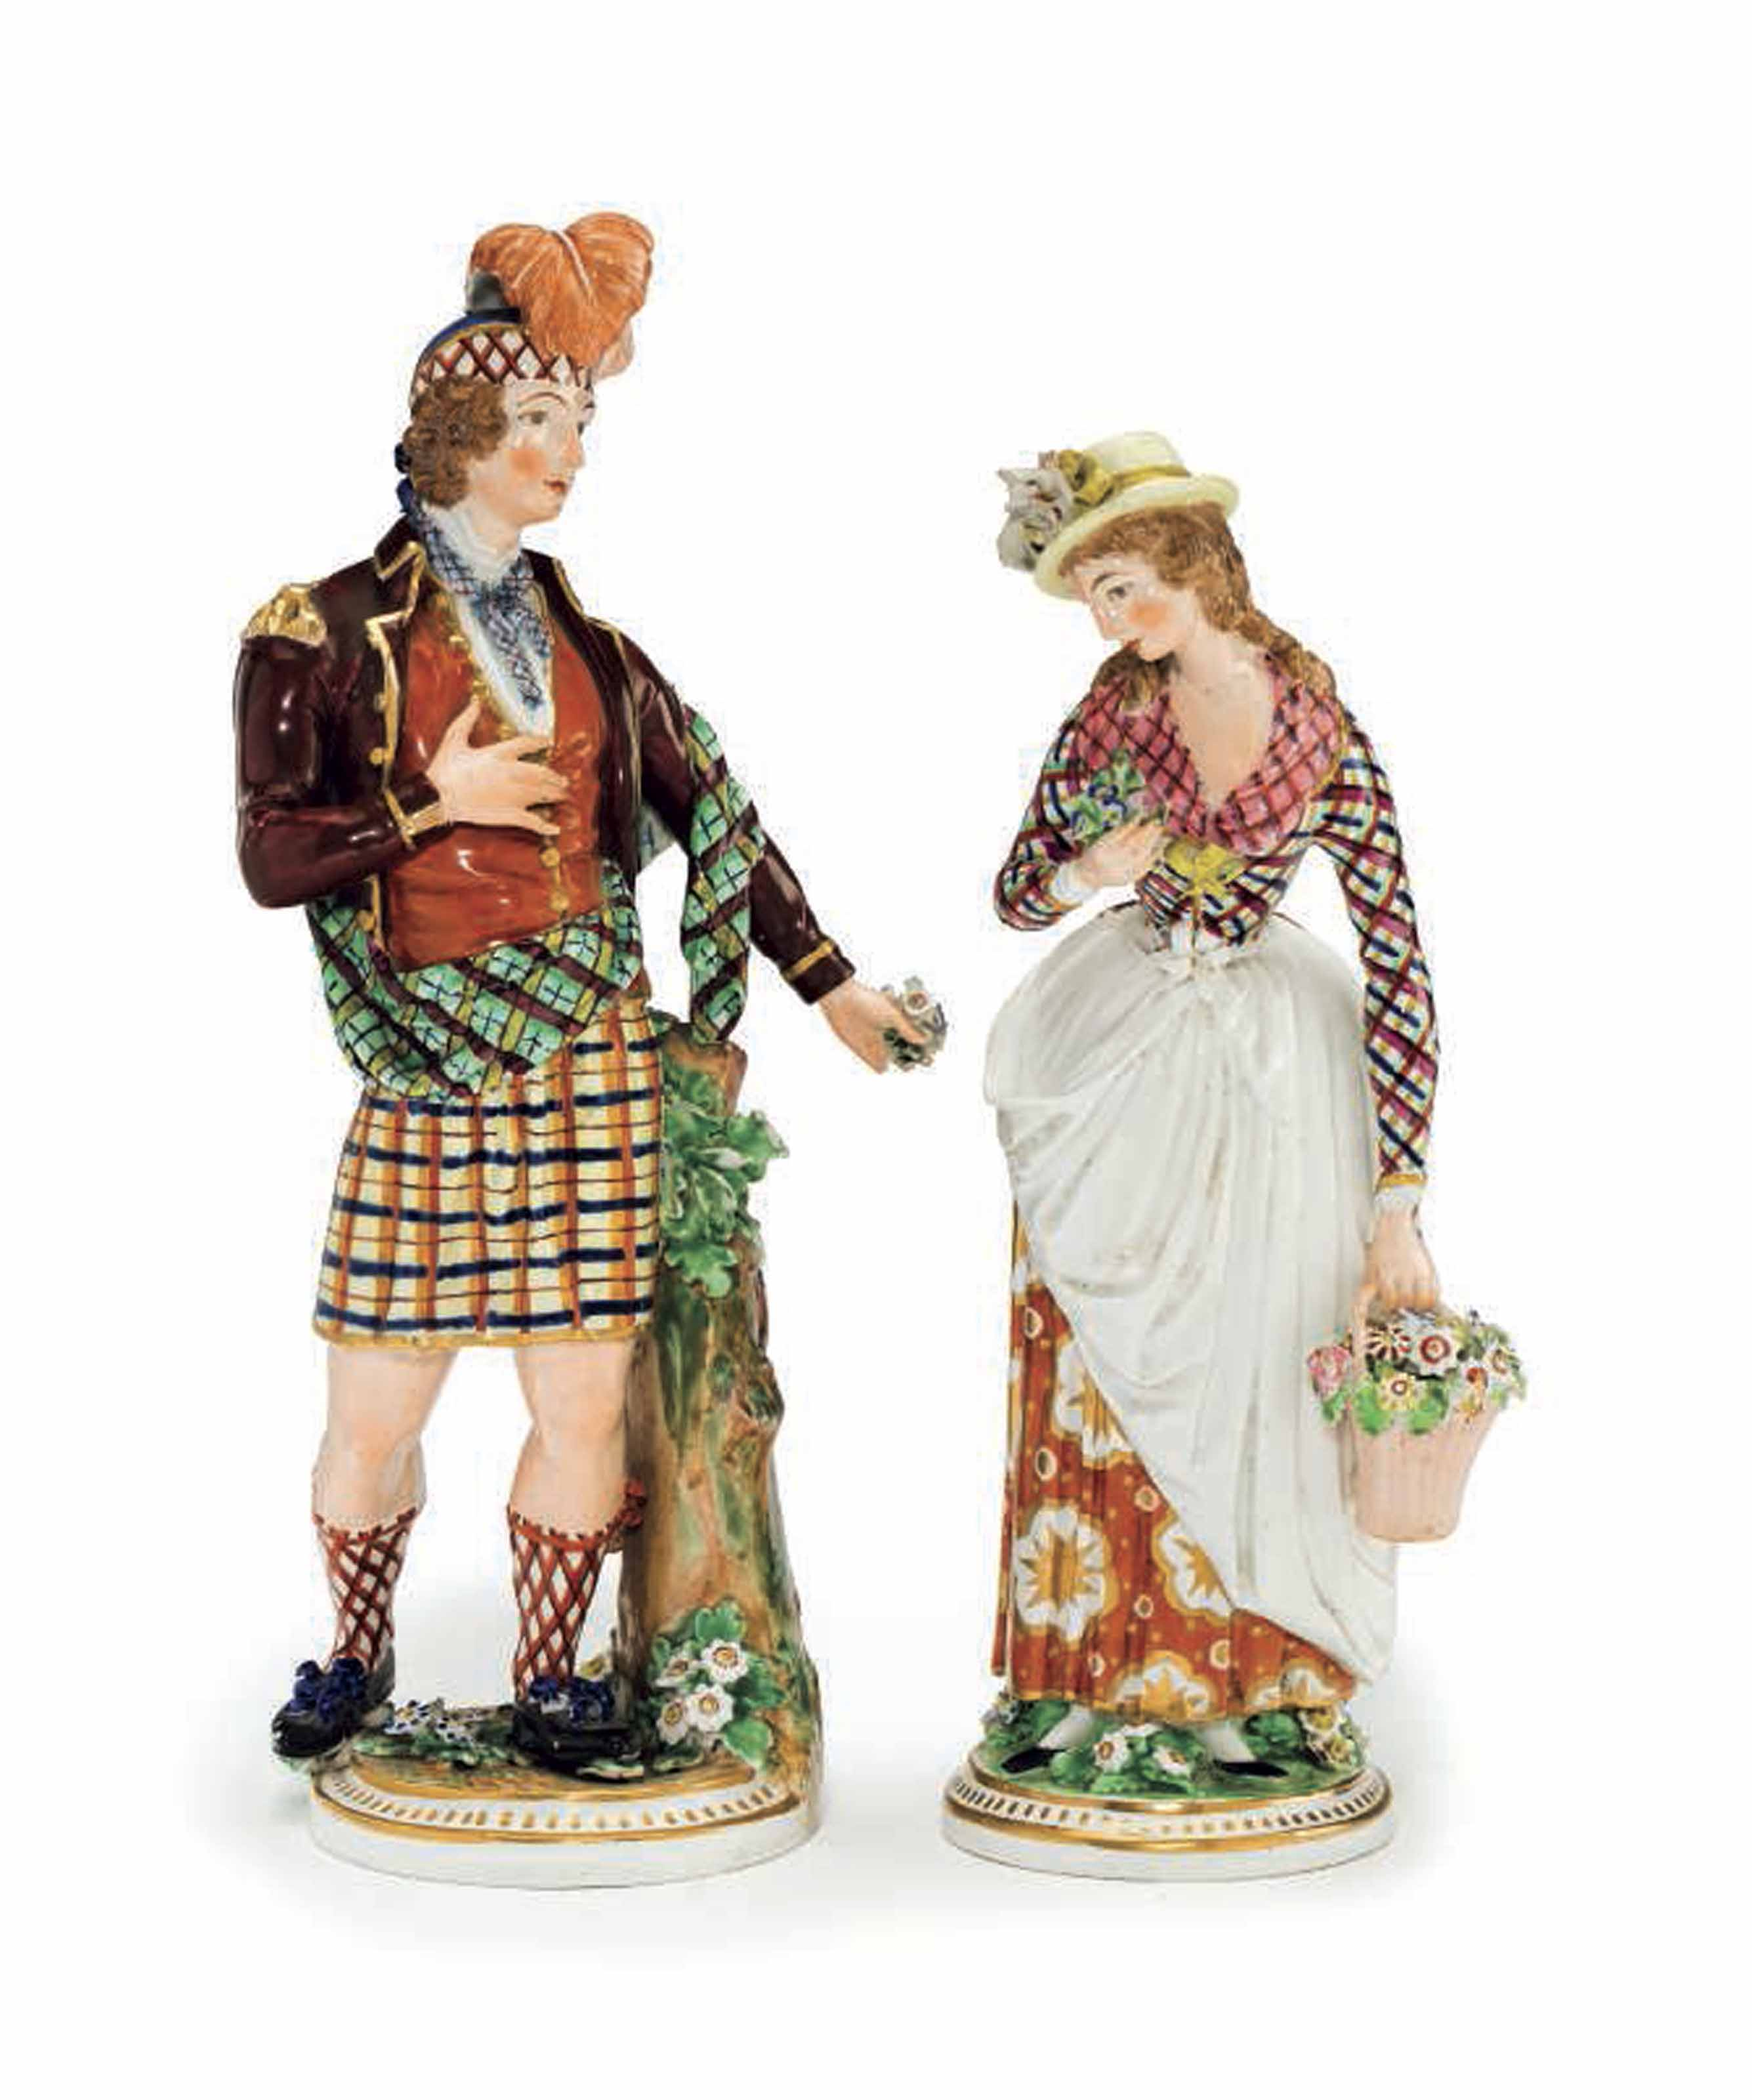 A PAIR OF DERBY PORCELAIN FIGURES OF A SCOTSMAN AND COMPANION